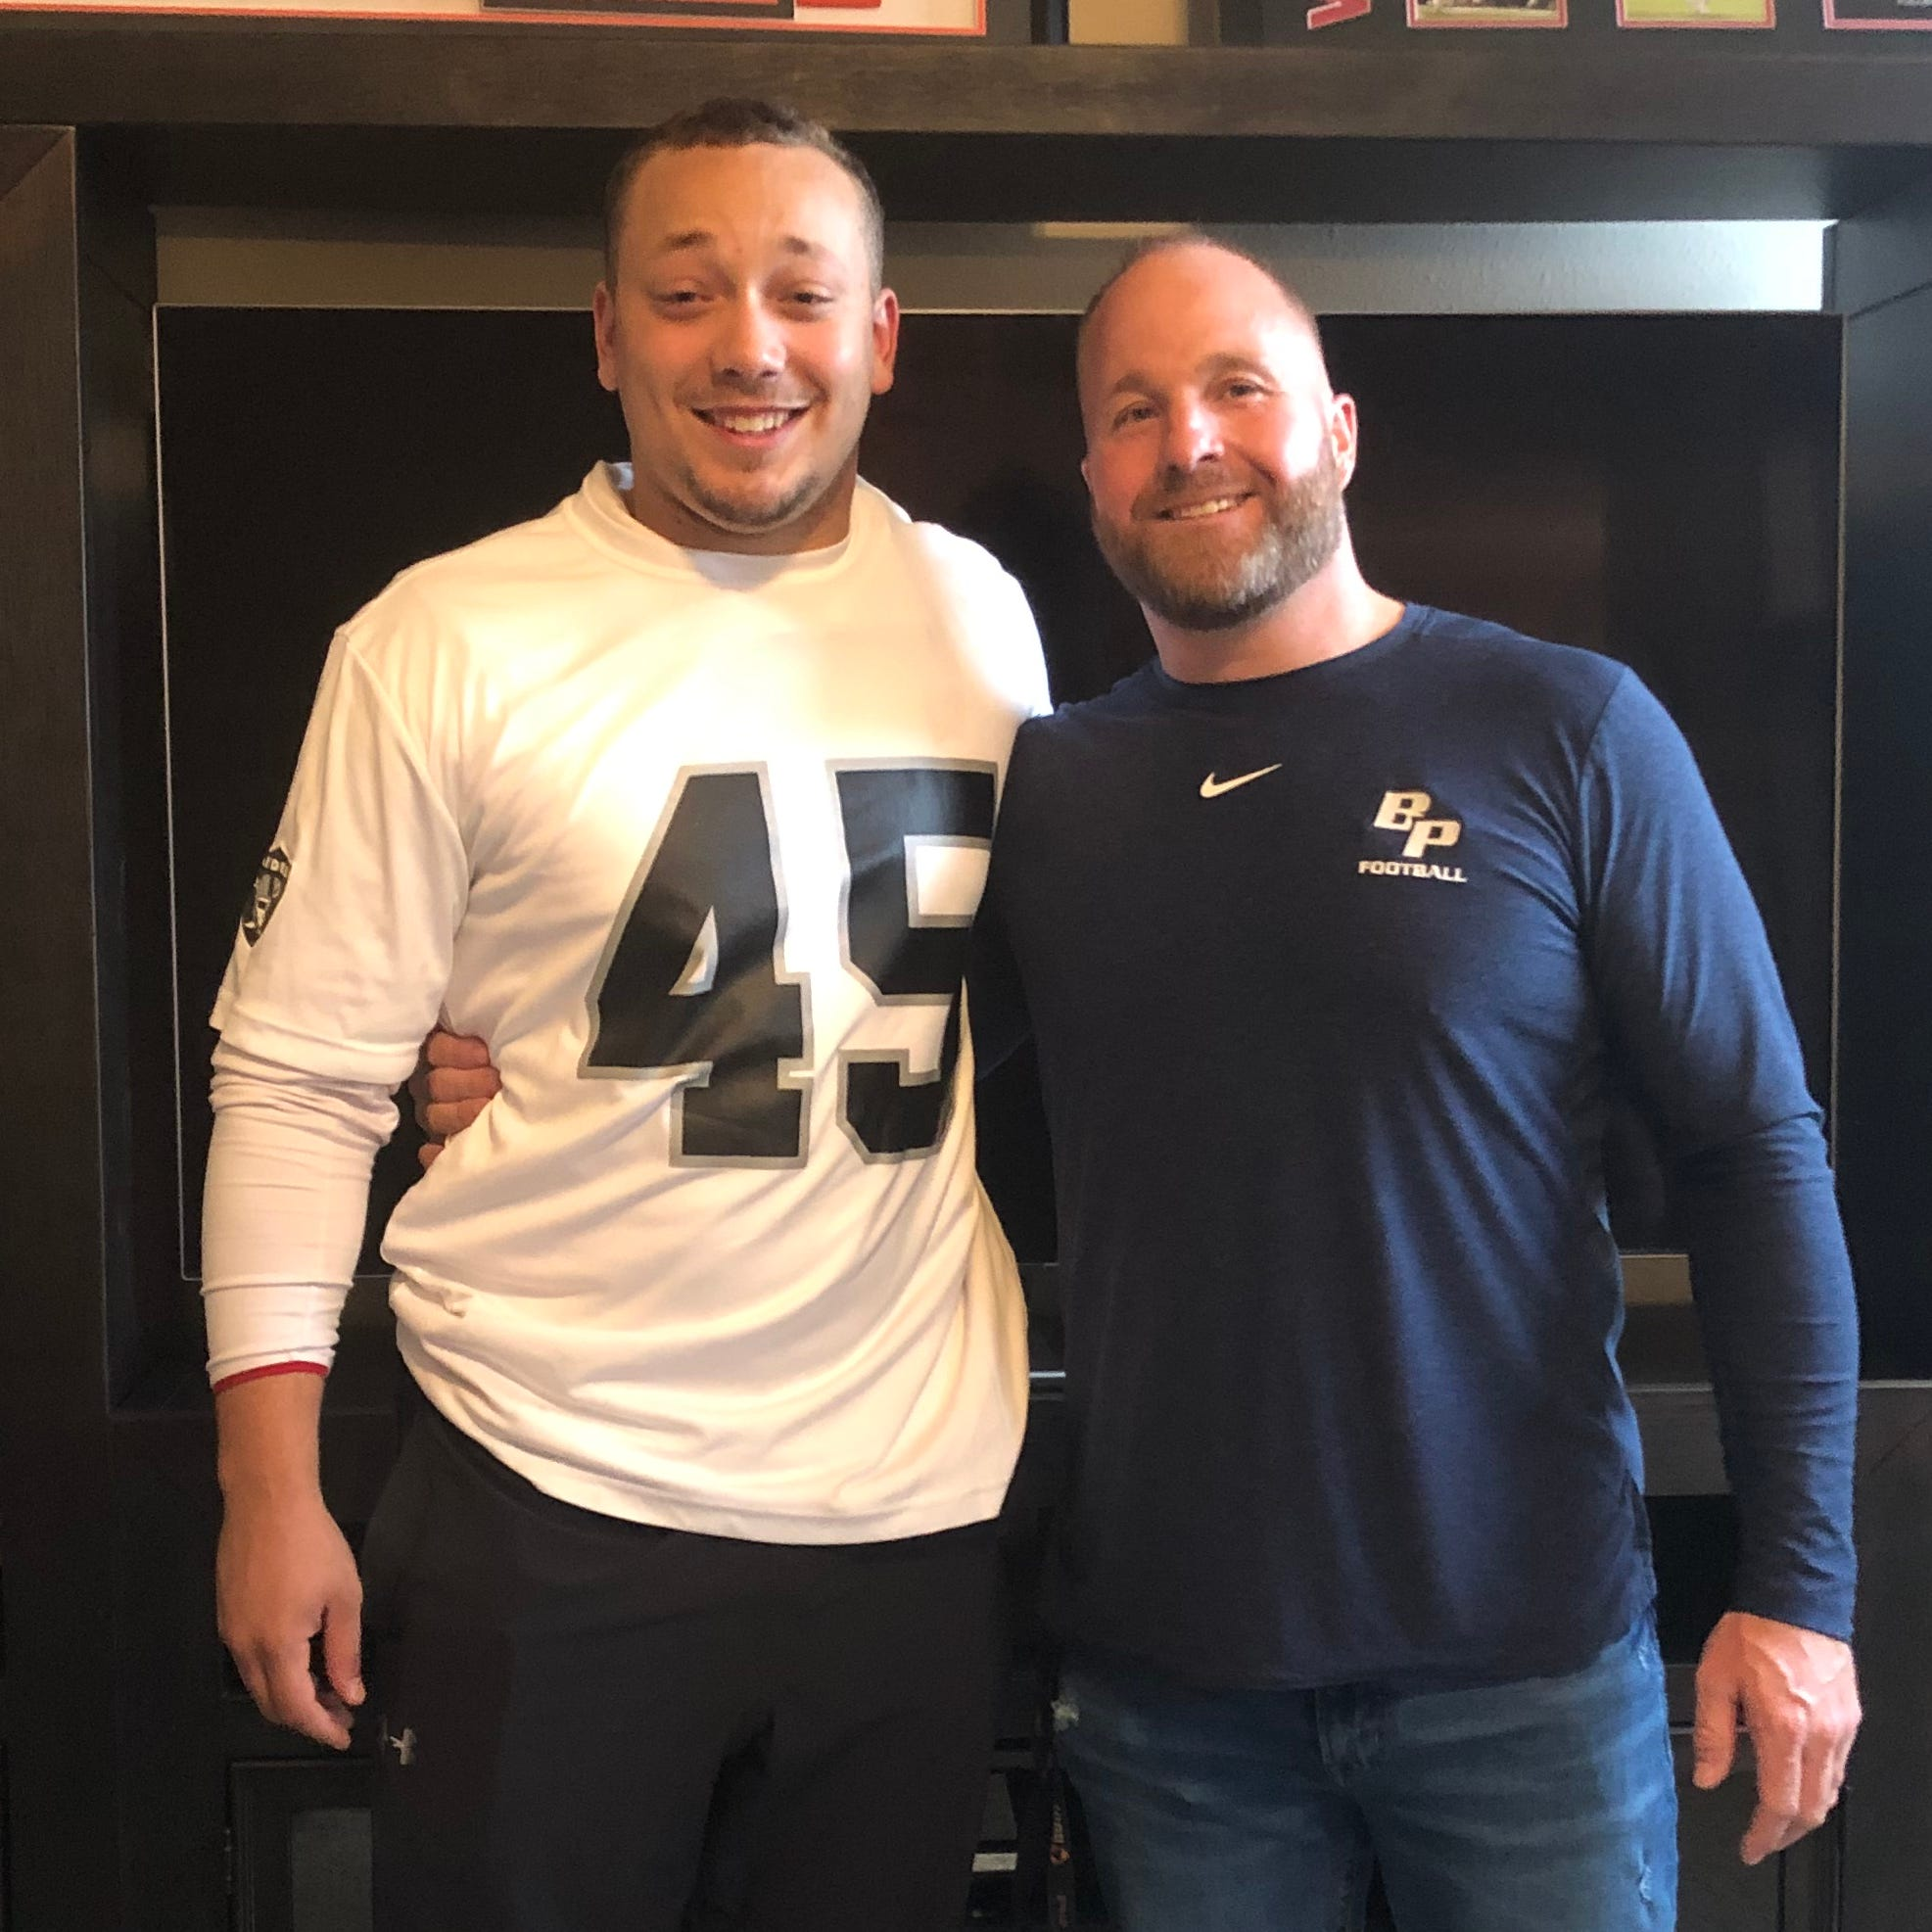 Bay Port's Alec Ingold signs with the Oakland Raiders